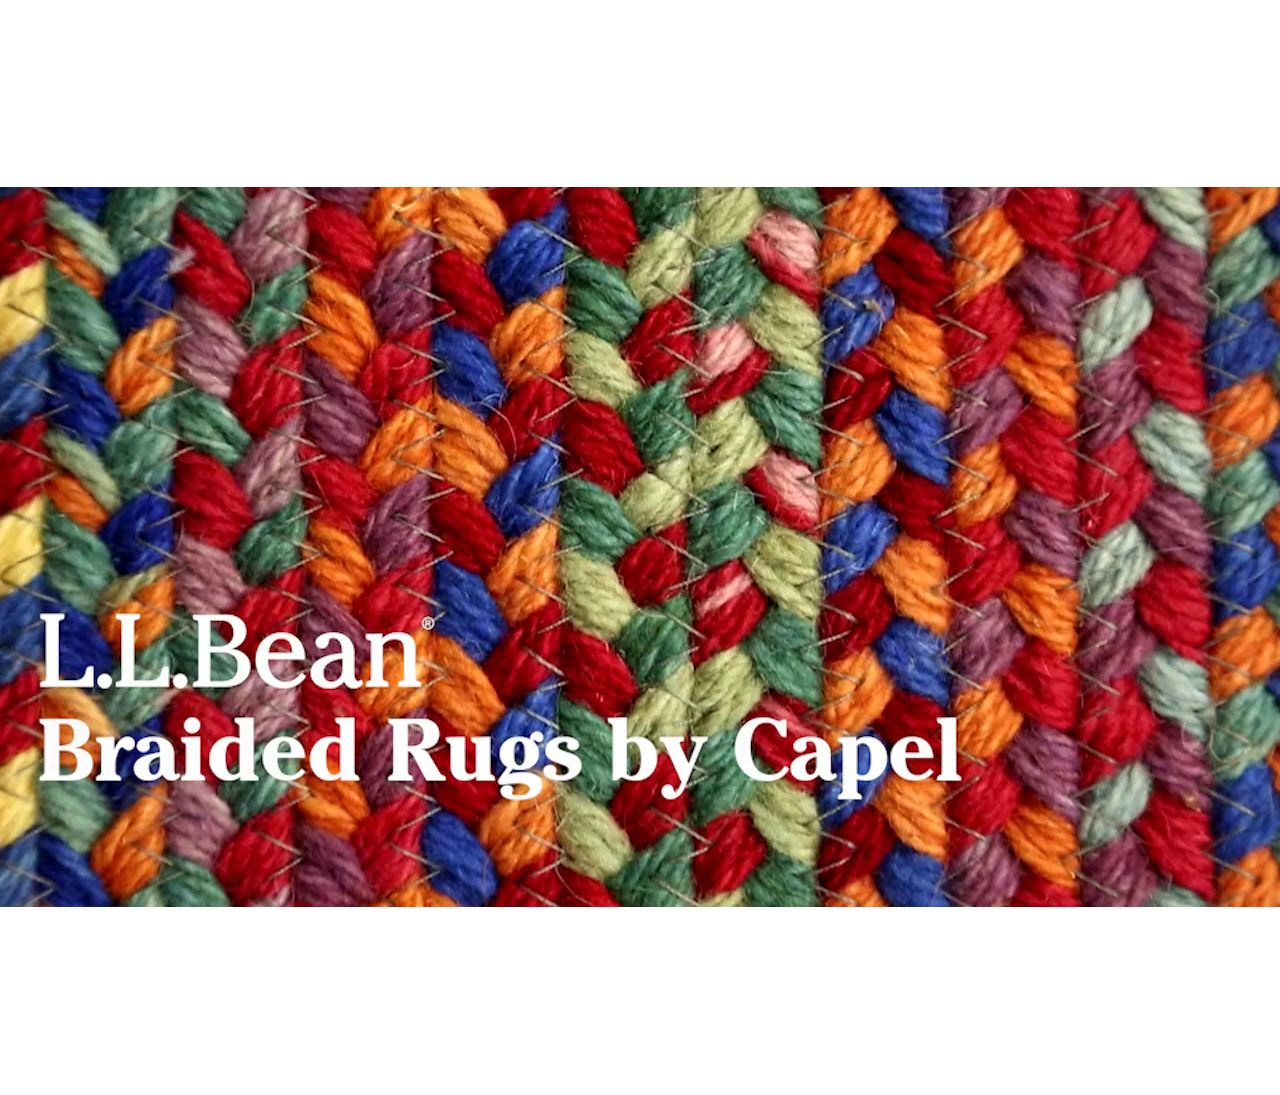 Video: Braided Rugs by Capel